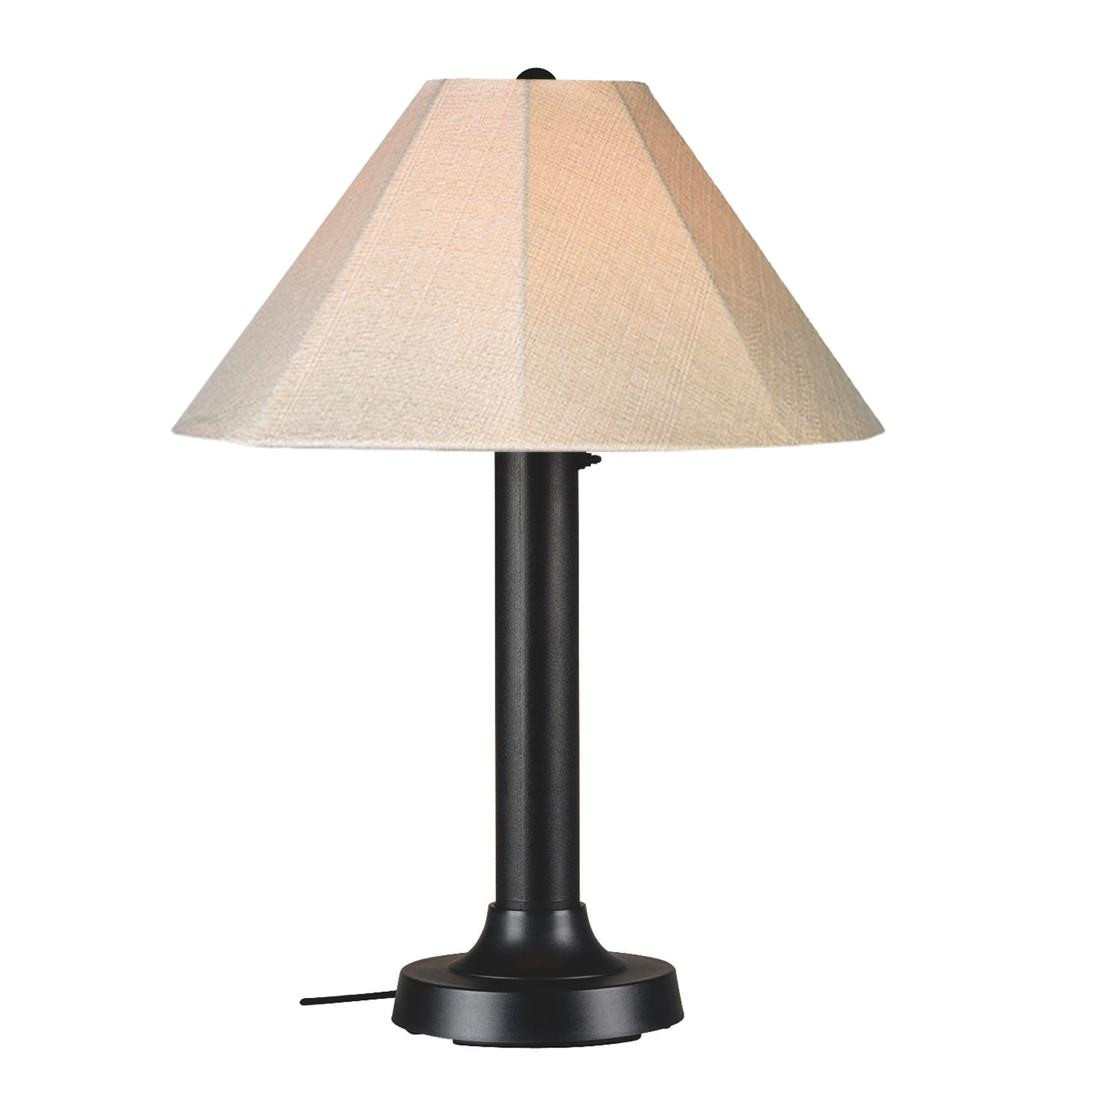 Best ideas about Outdoor Table Lamps . Save or Pin Outdoor Table Lamp 610 with Black Body and Sunbrella Now.